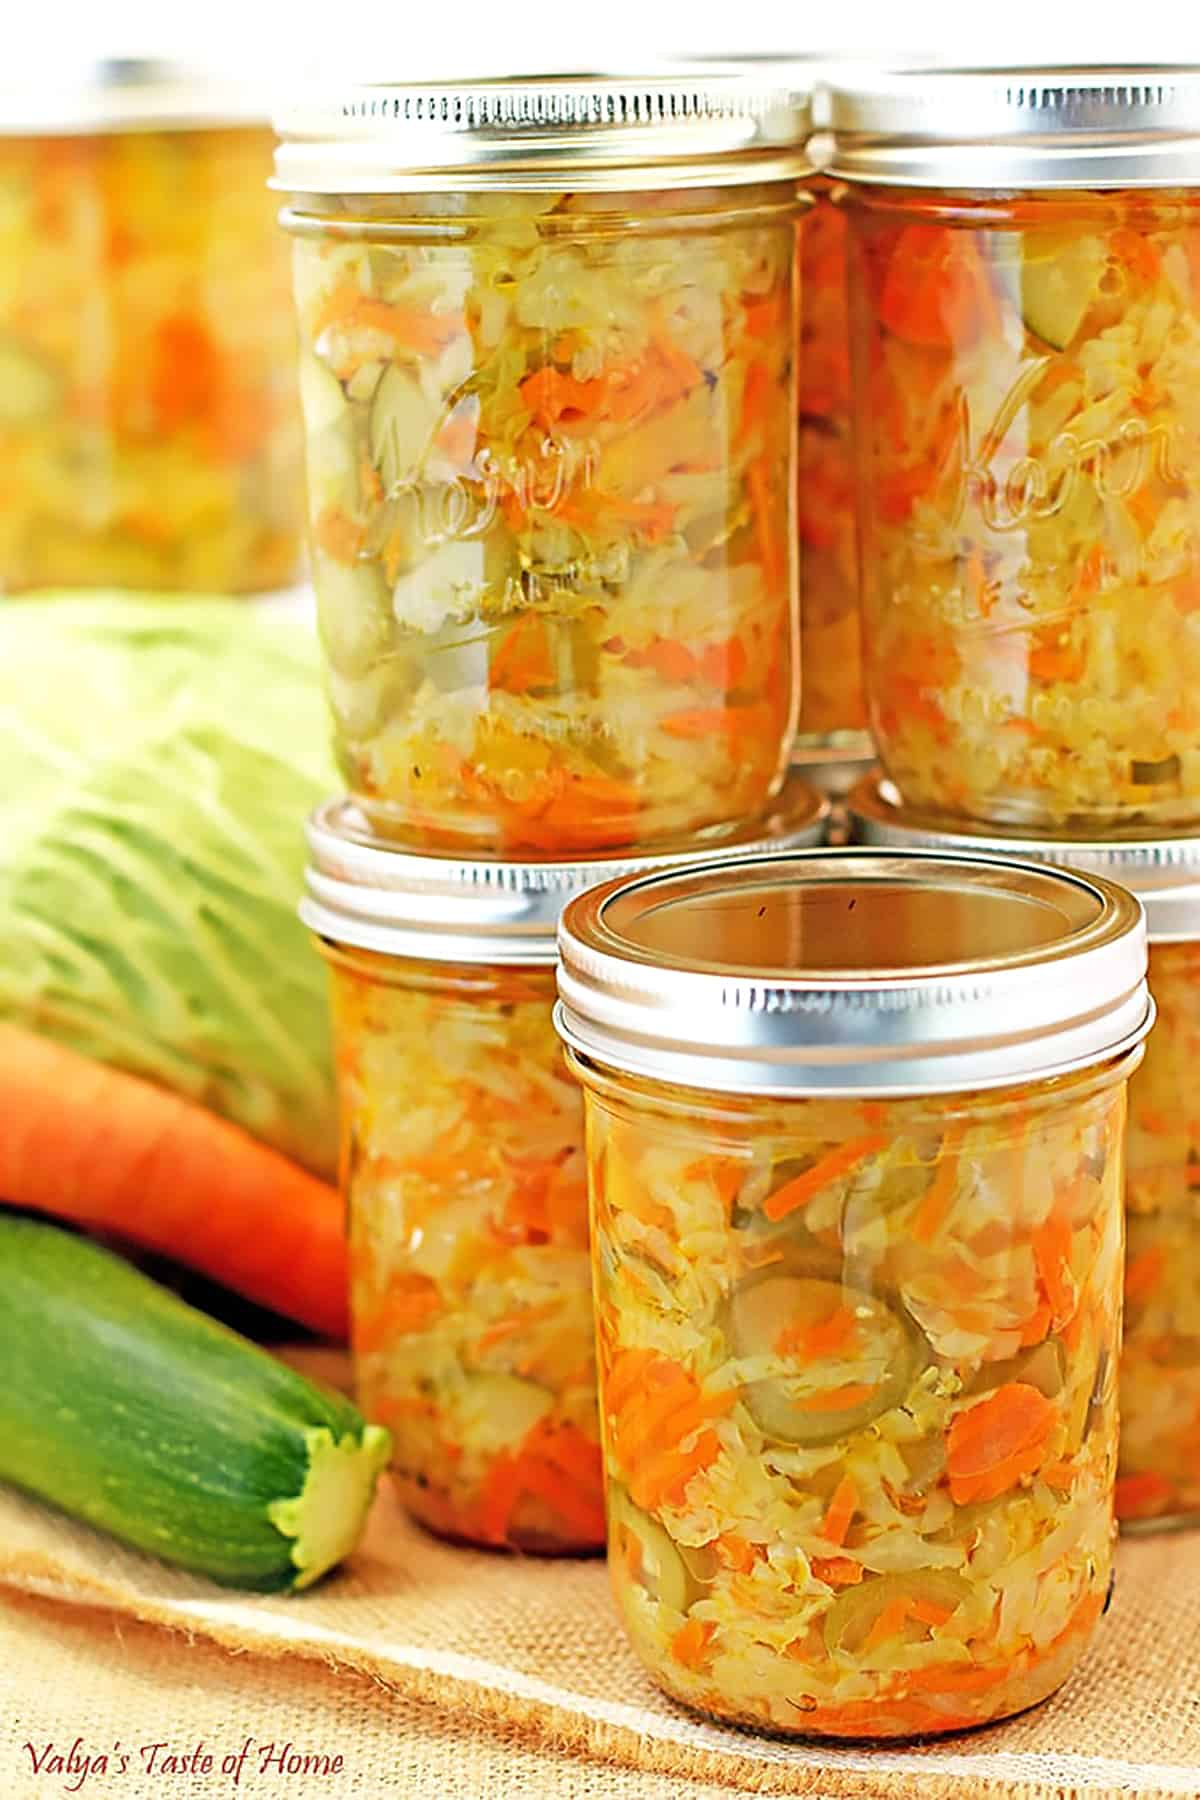 I'm super excited to share this well-loved Tasty Canned Vegetable Salad Recipe with all of you, my friends, readers, and followers. If you're new to my blog, I'd like to mention that I absolutely love old and traditional recipes such as these.